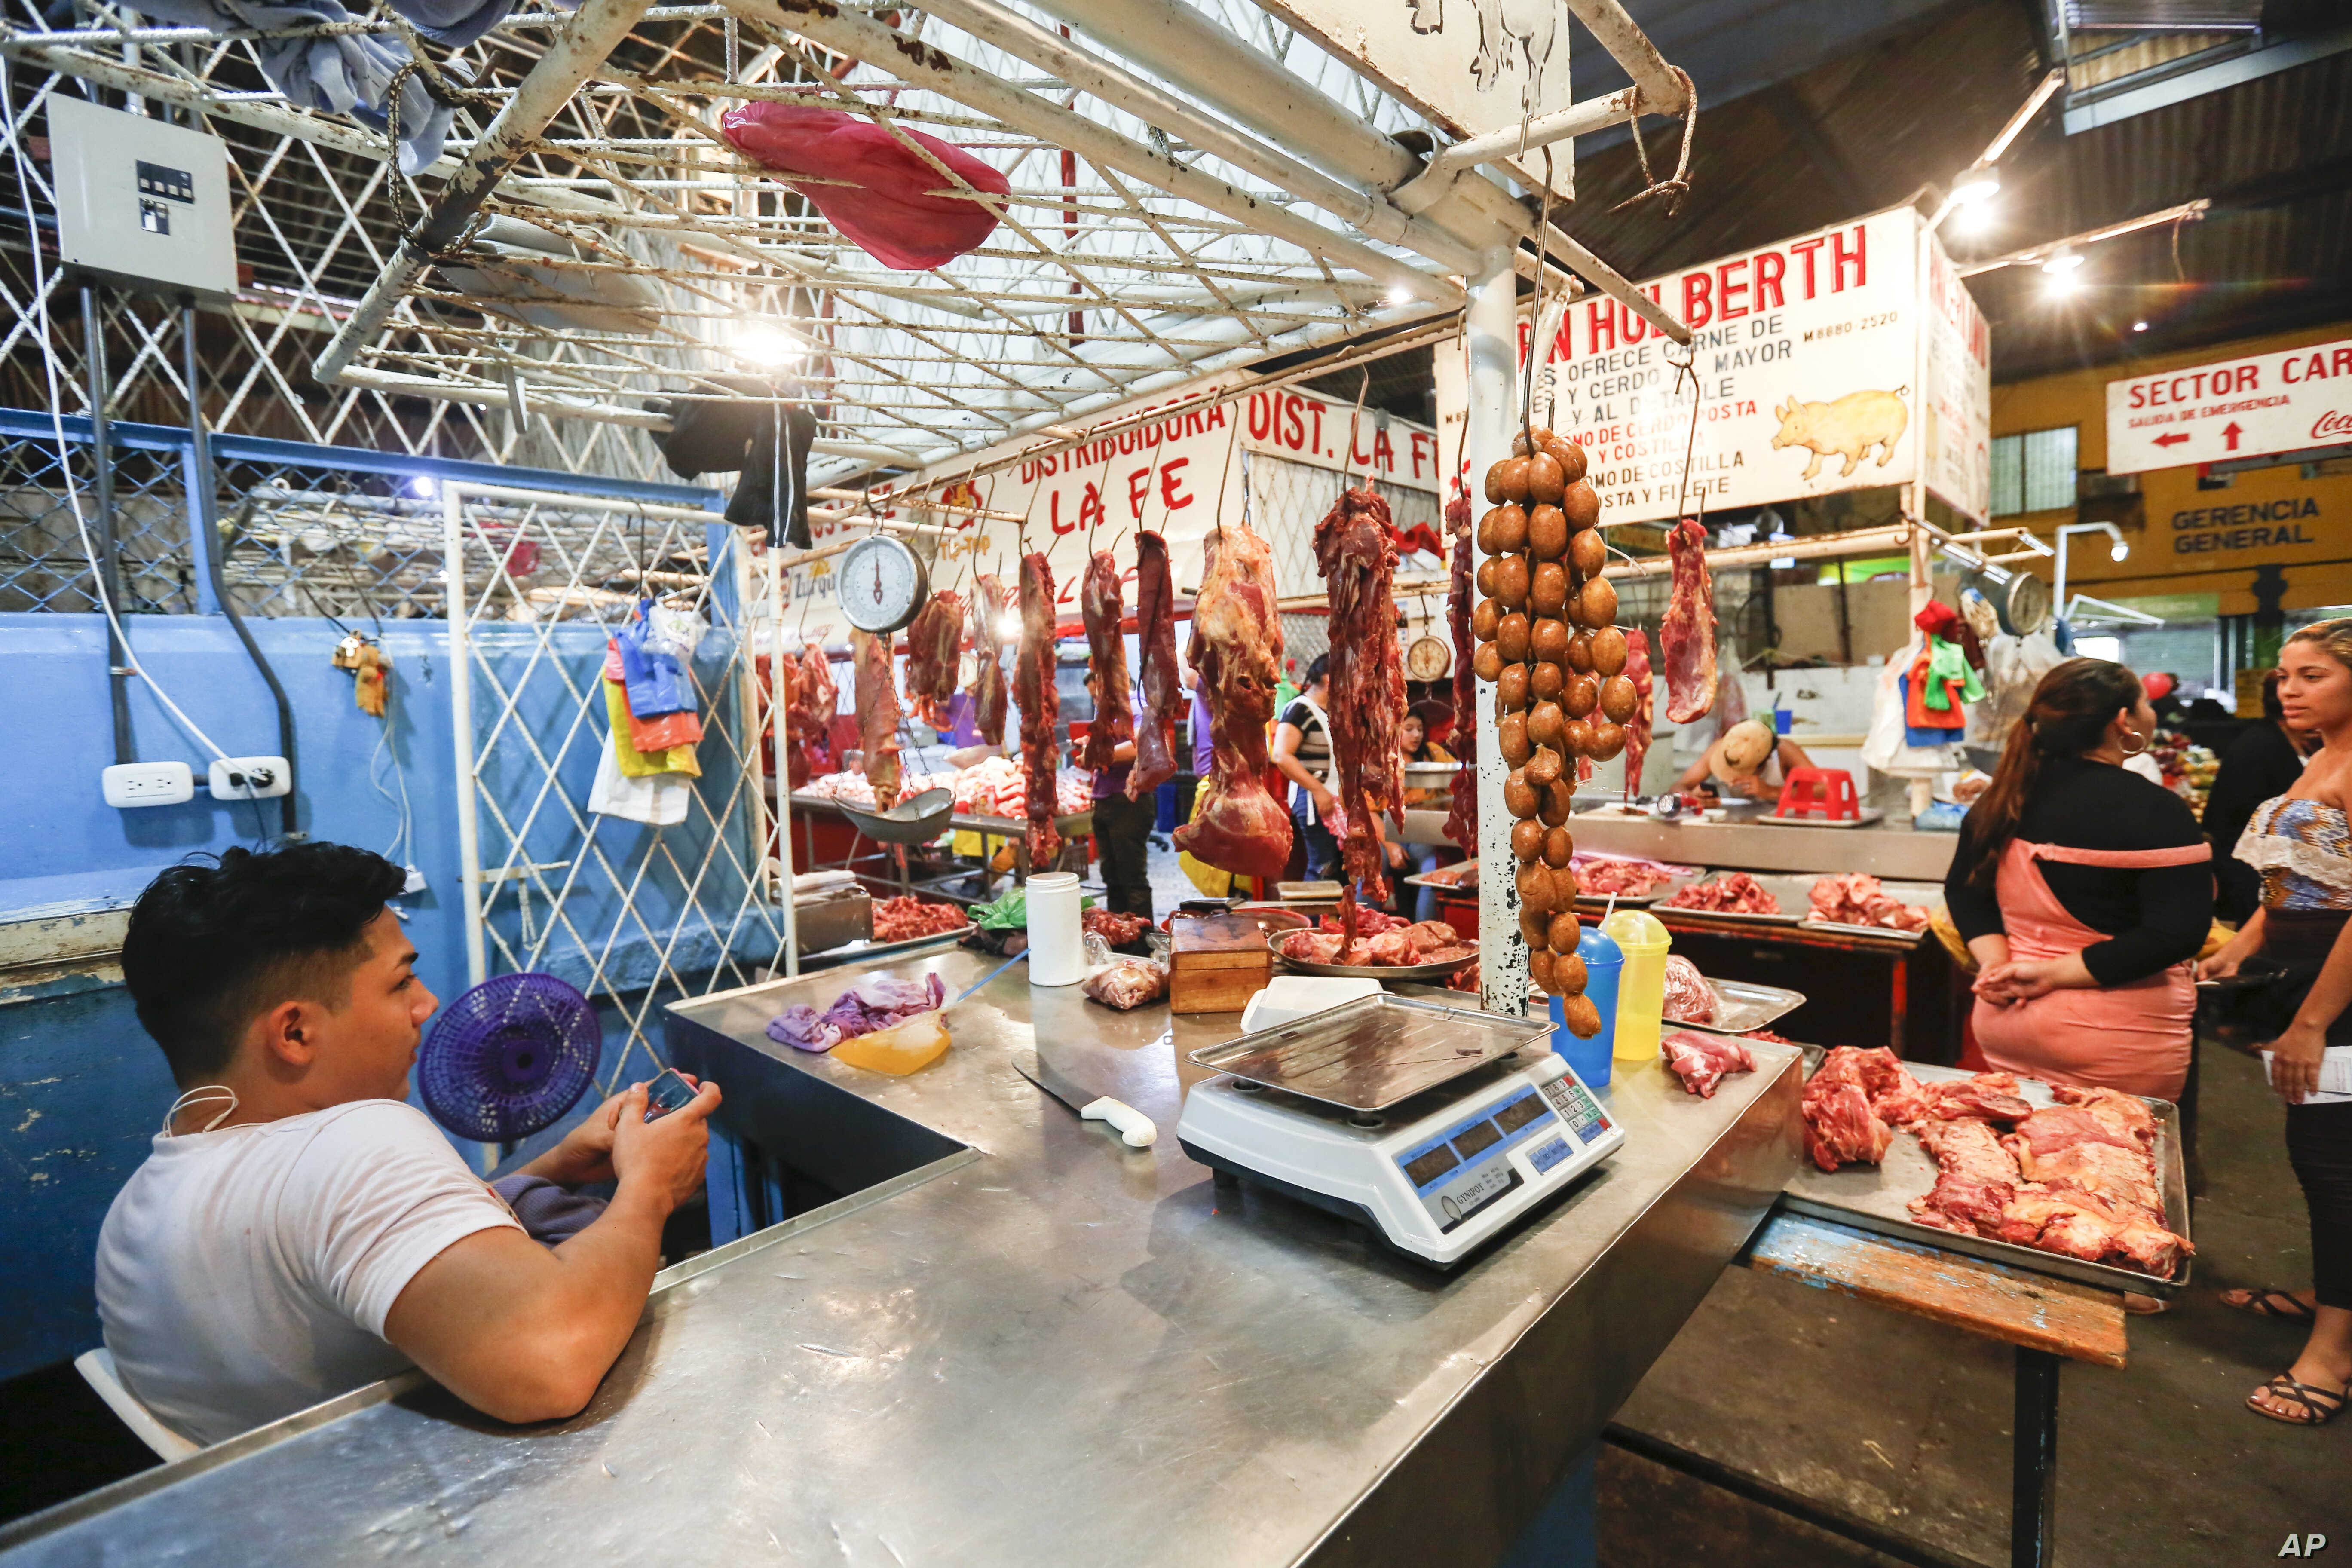 A vendor waits for customers at a market in Managua, Nicaragua, Dec. 21, 2018. In the streets of Managua, outward appearances suggest some degree of normality. But vendors say business has been running 25 to 30 percent below what it was last year, ev...